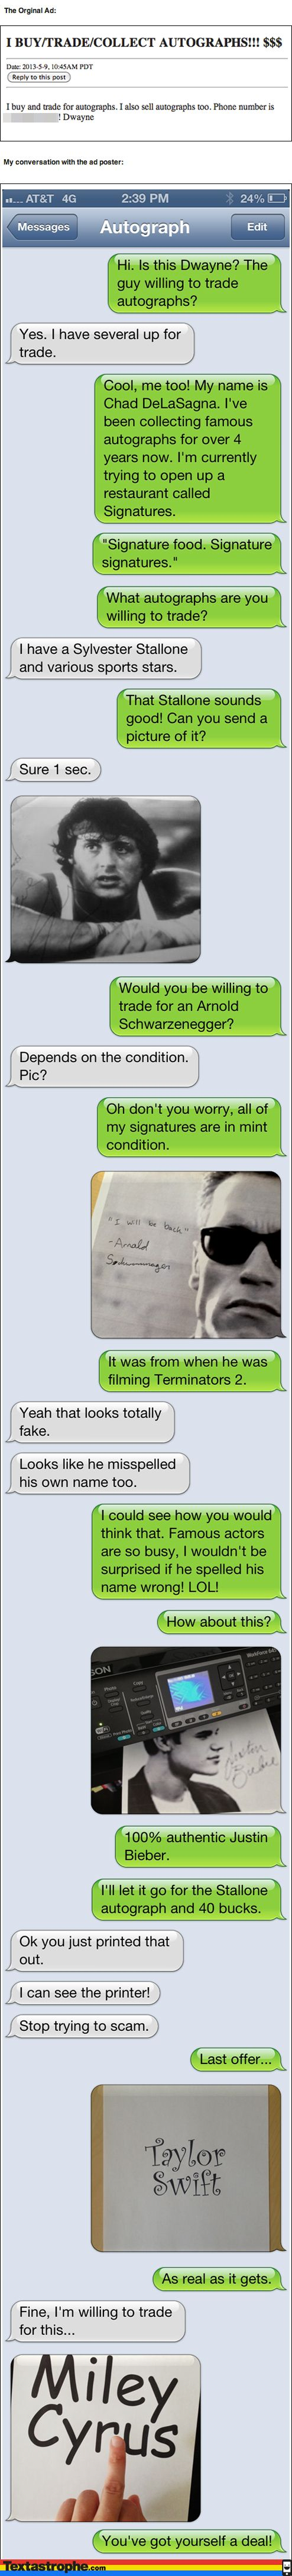 Awesome Trolling